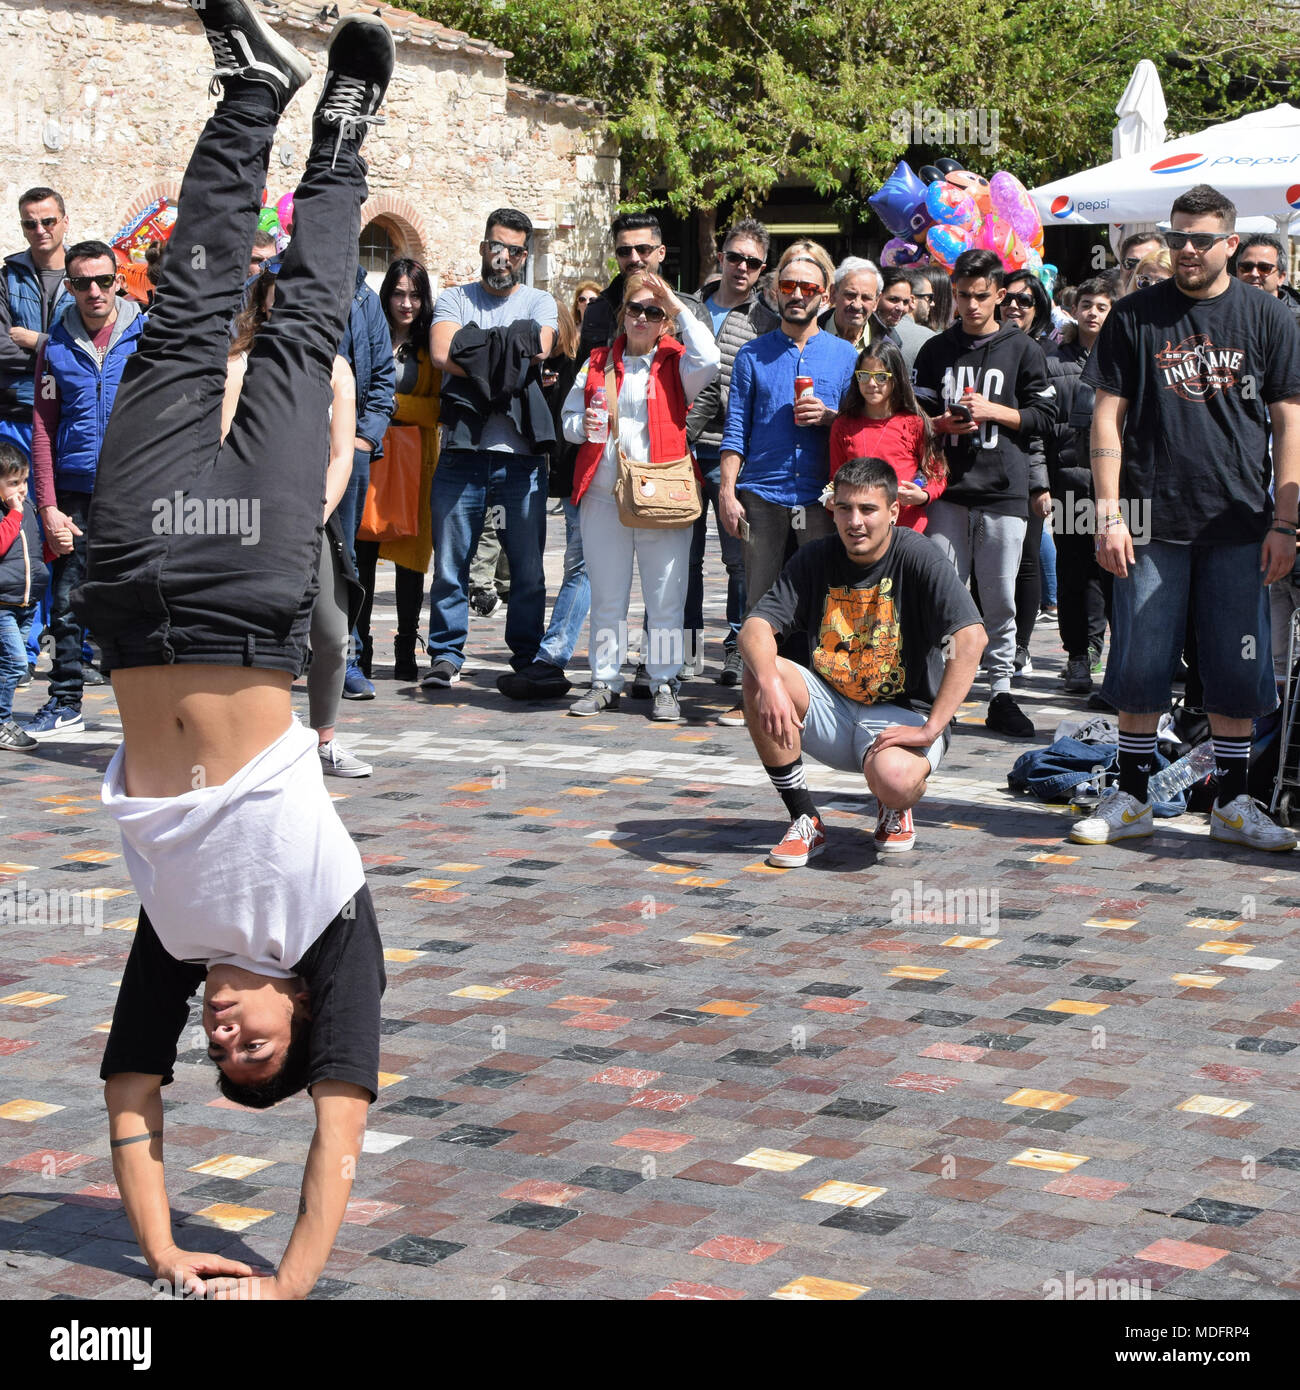 ATHENS, GREECE - APRIL 1, 2018: Man performing breakdance handstand move and crowd of people watching. Street dancing youth culture. - Stock Image